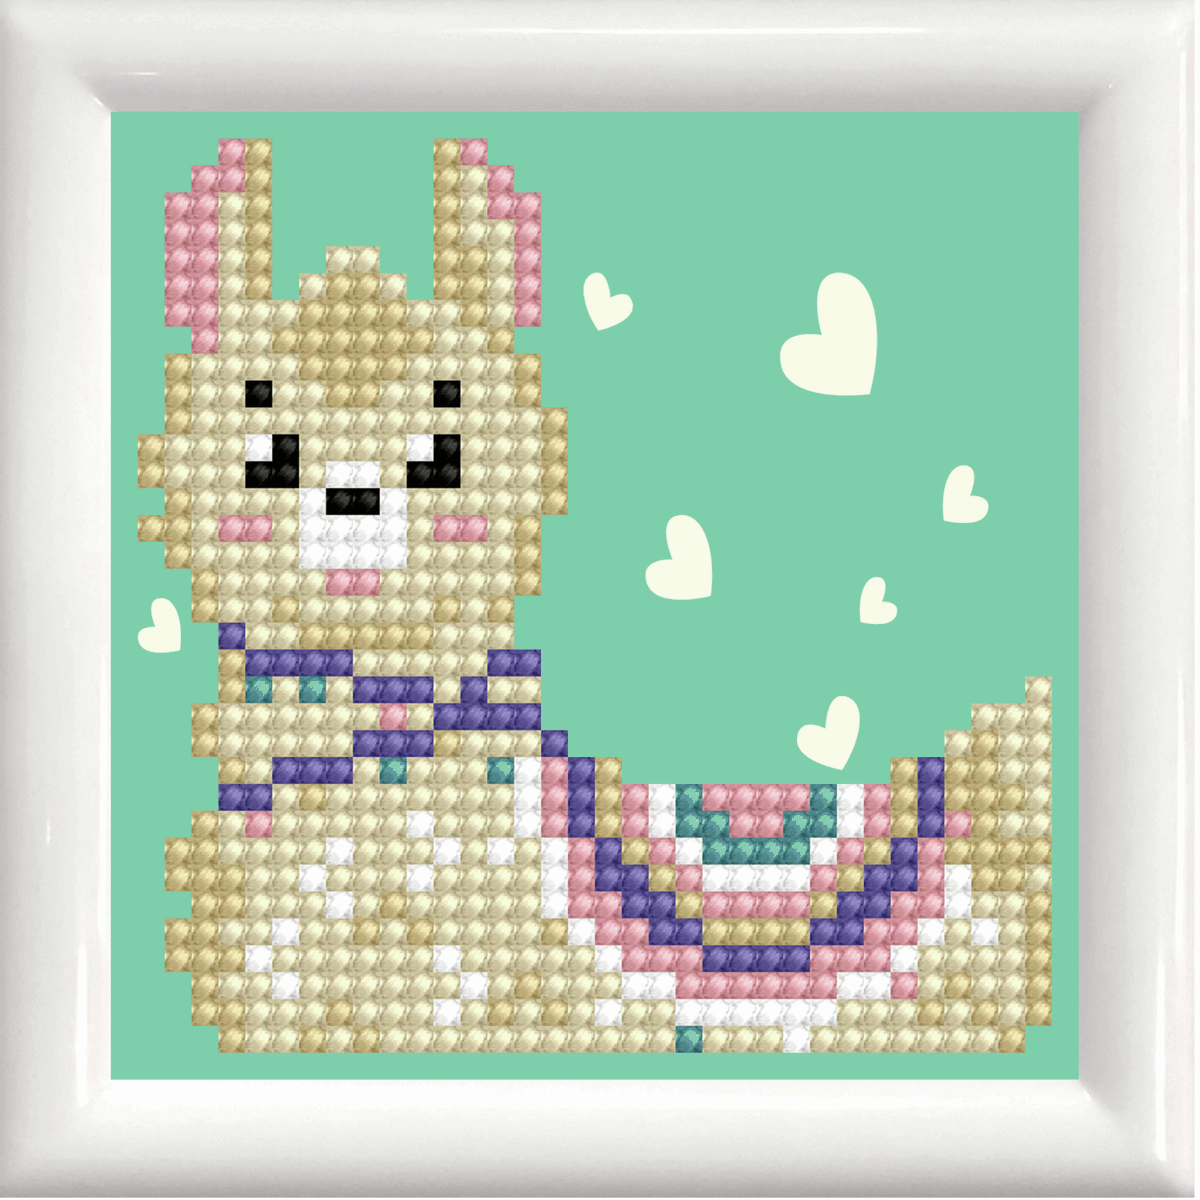 Picture of Diamond Painting Kit: Llama Heart with Frame